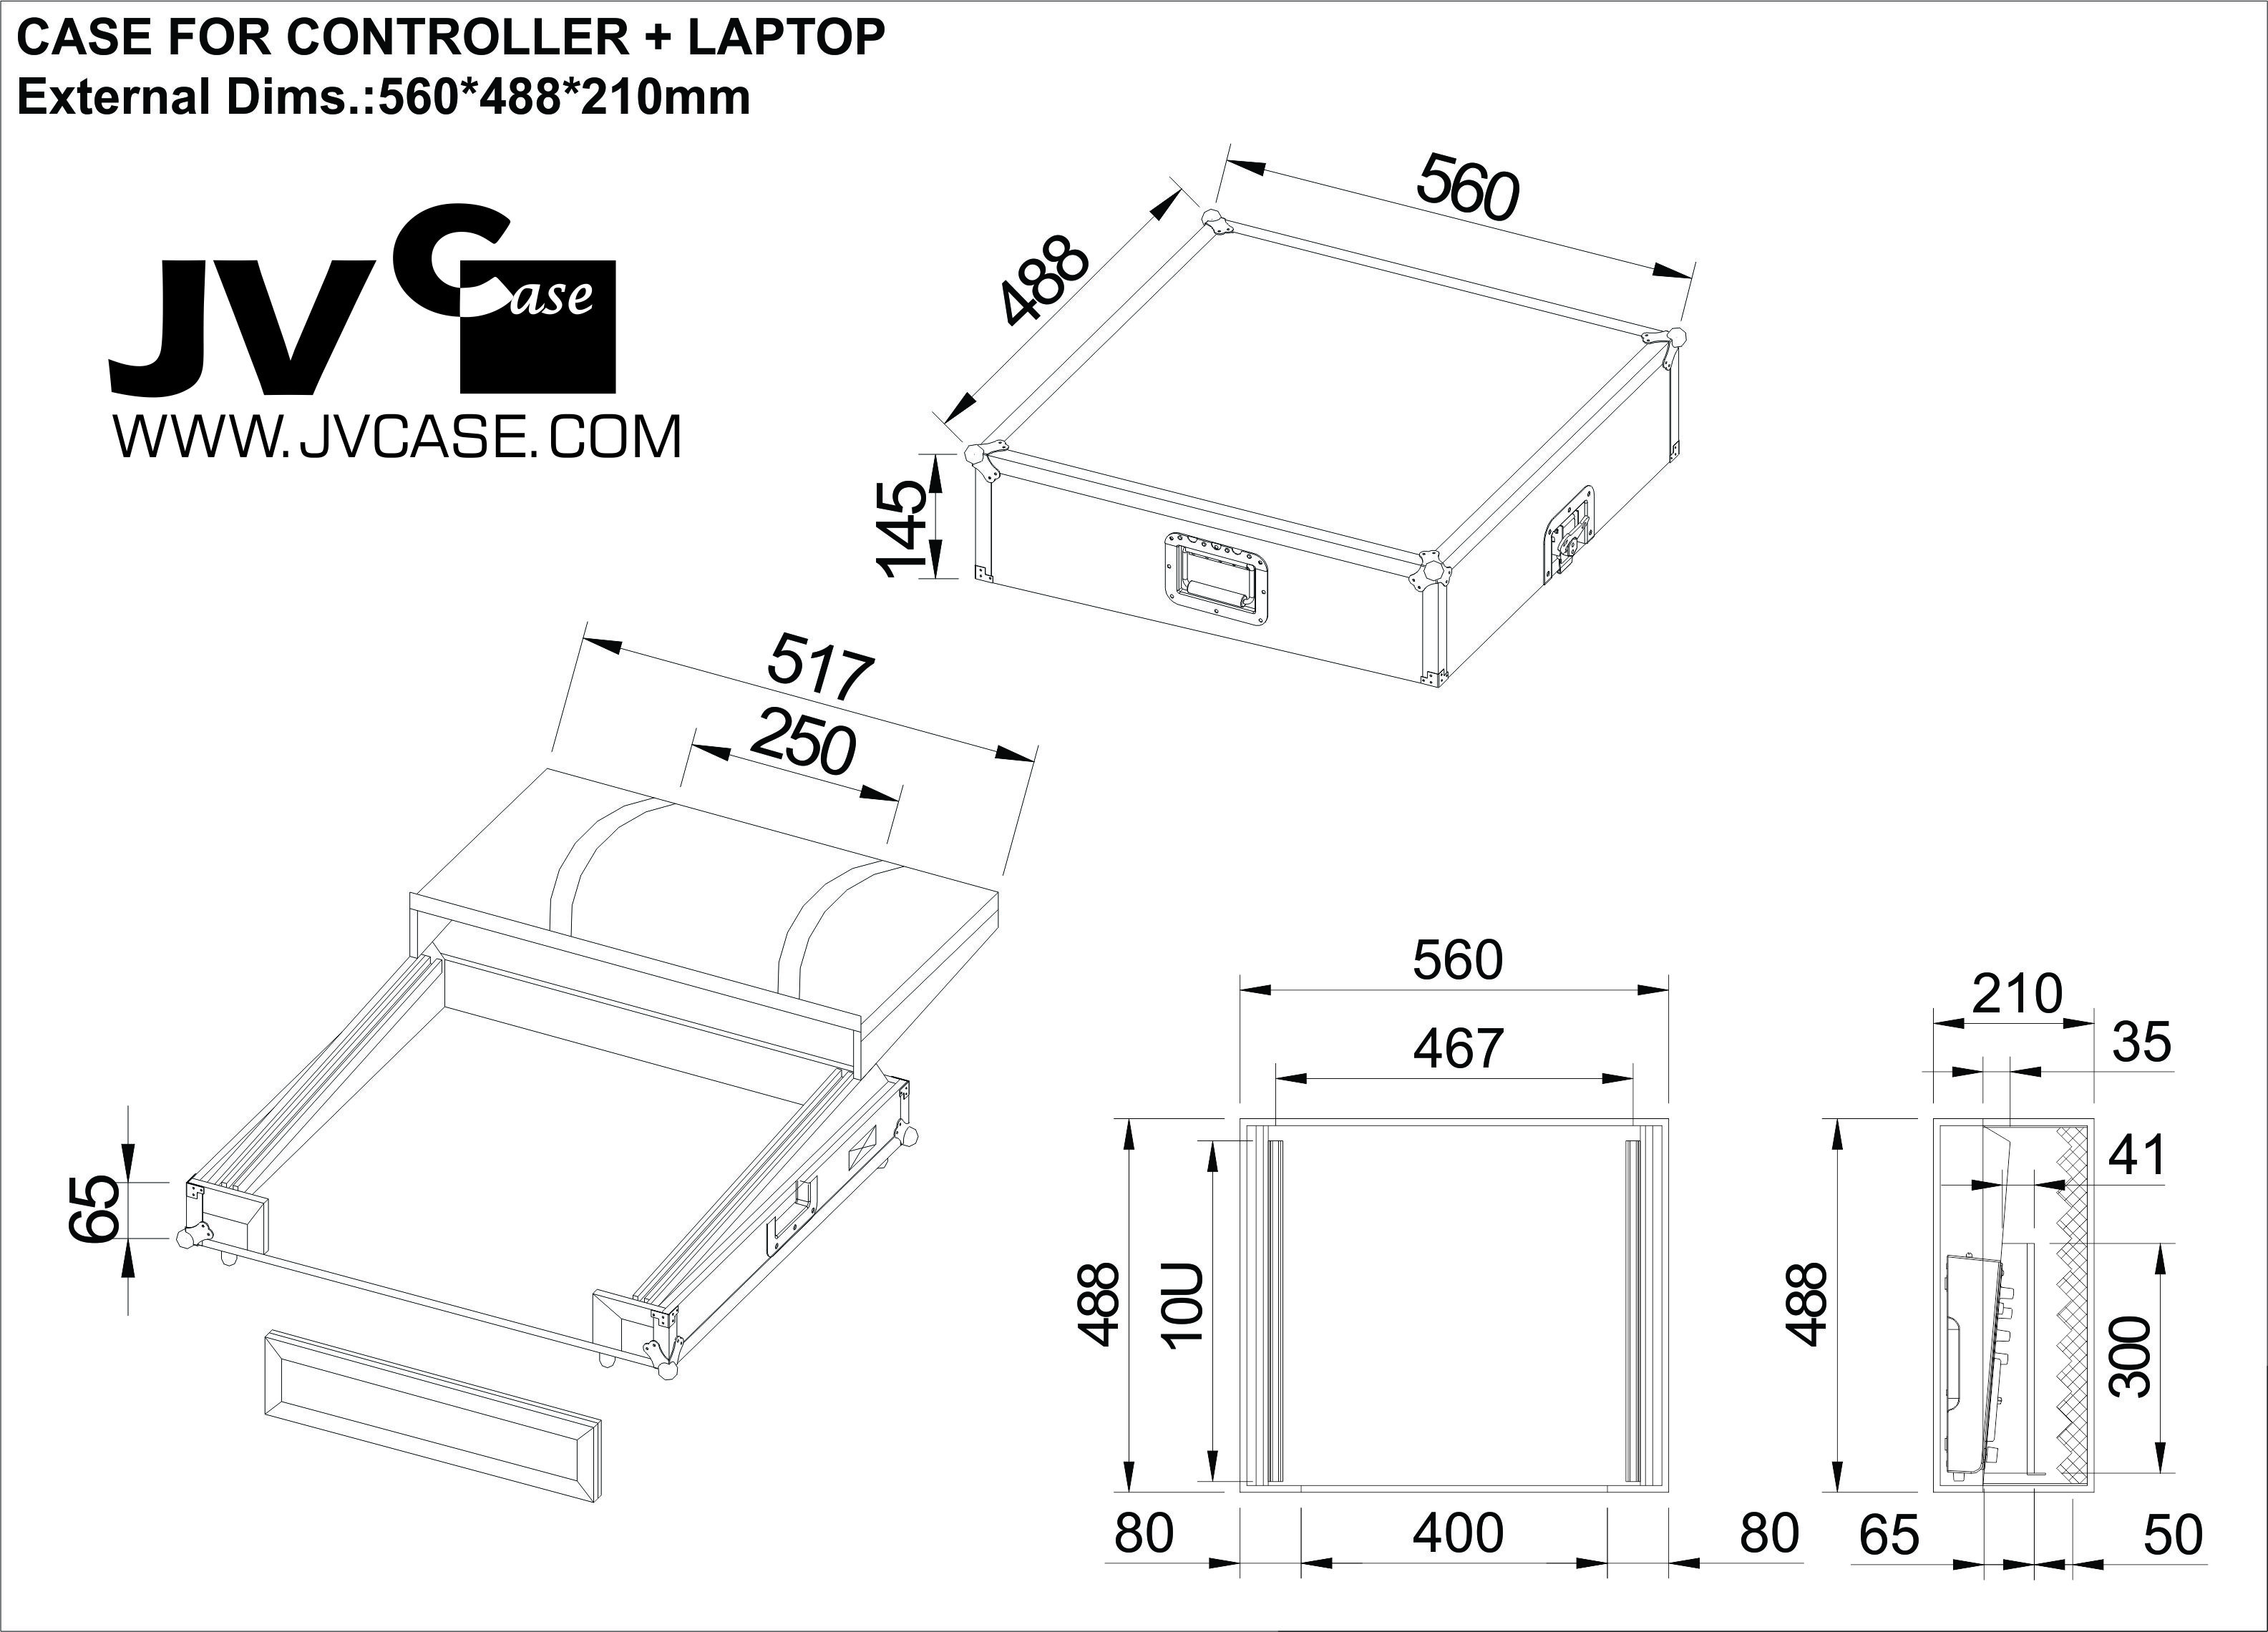 jb systems - case for controller   laptop